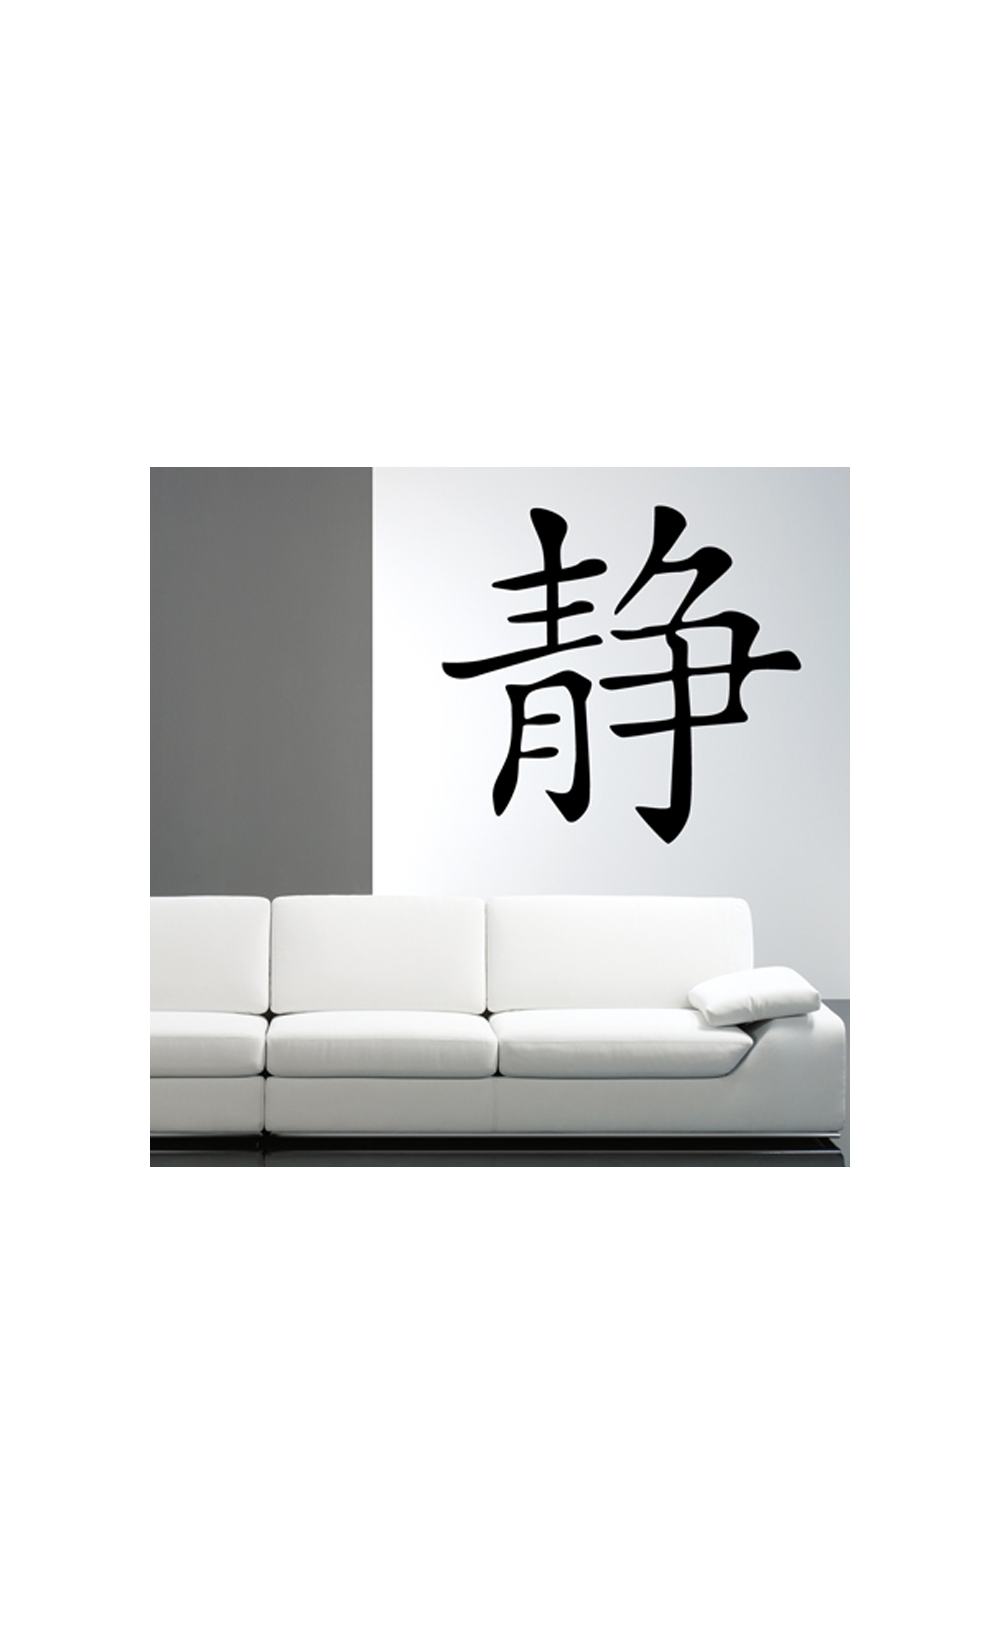 sticker mural pour d corer son int rieur petit prix mod le chinois calme et tranquilit. Black Bedroom Furniture Sets. Home Design Ideas